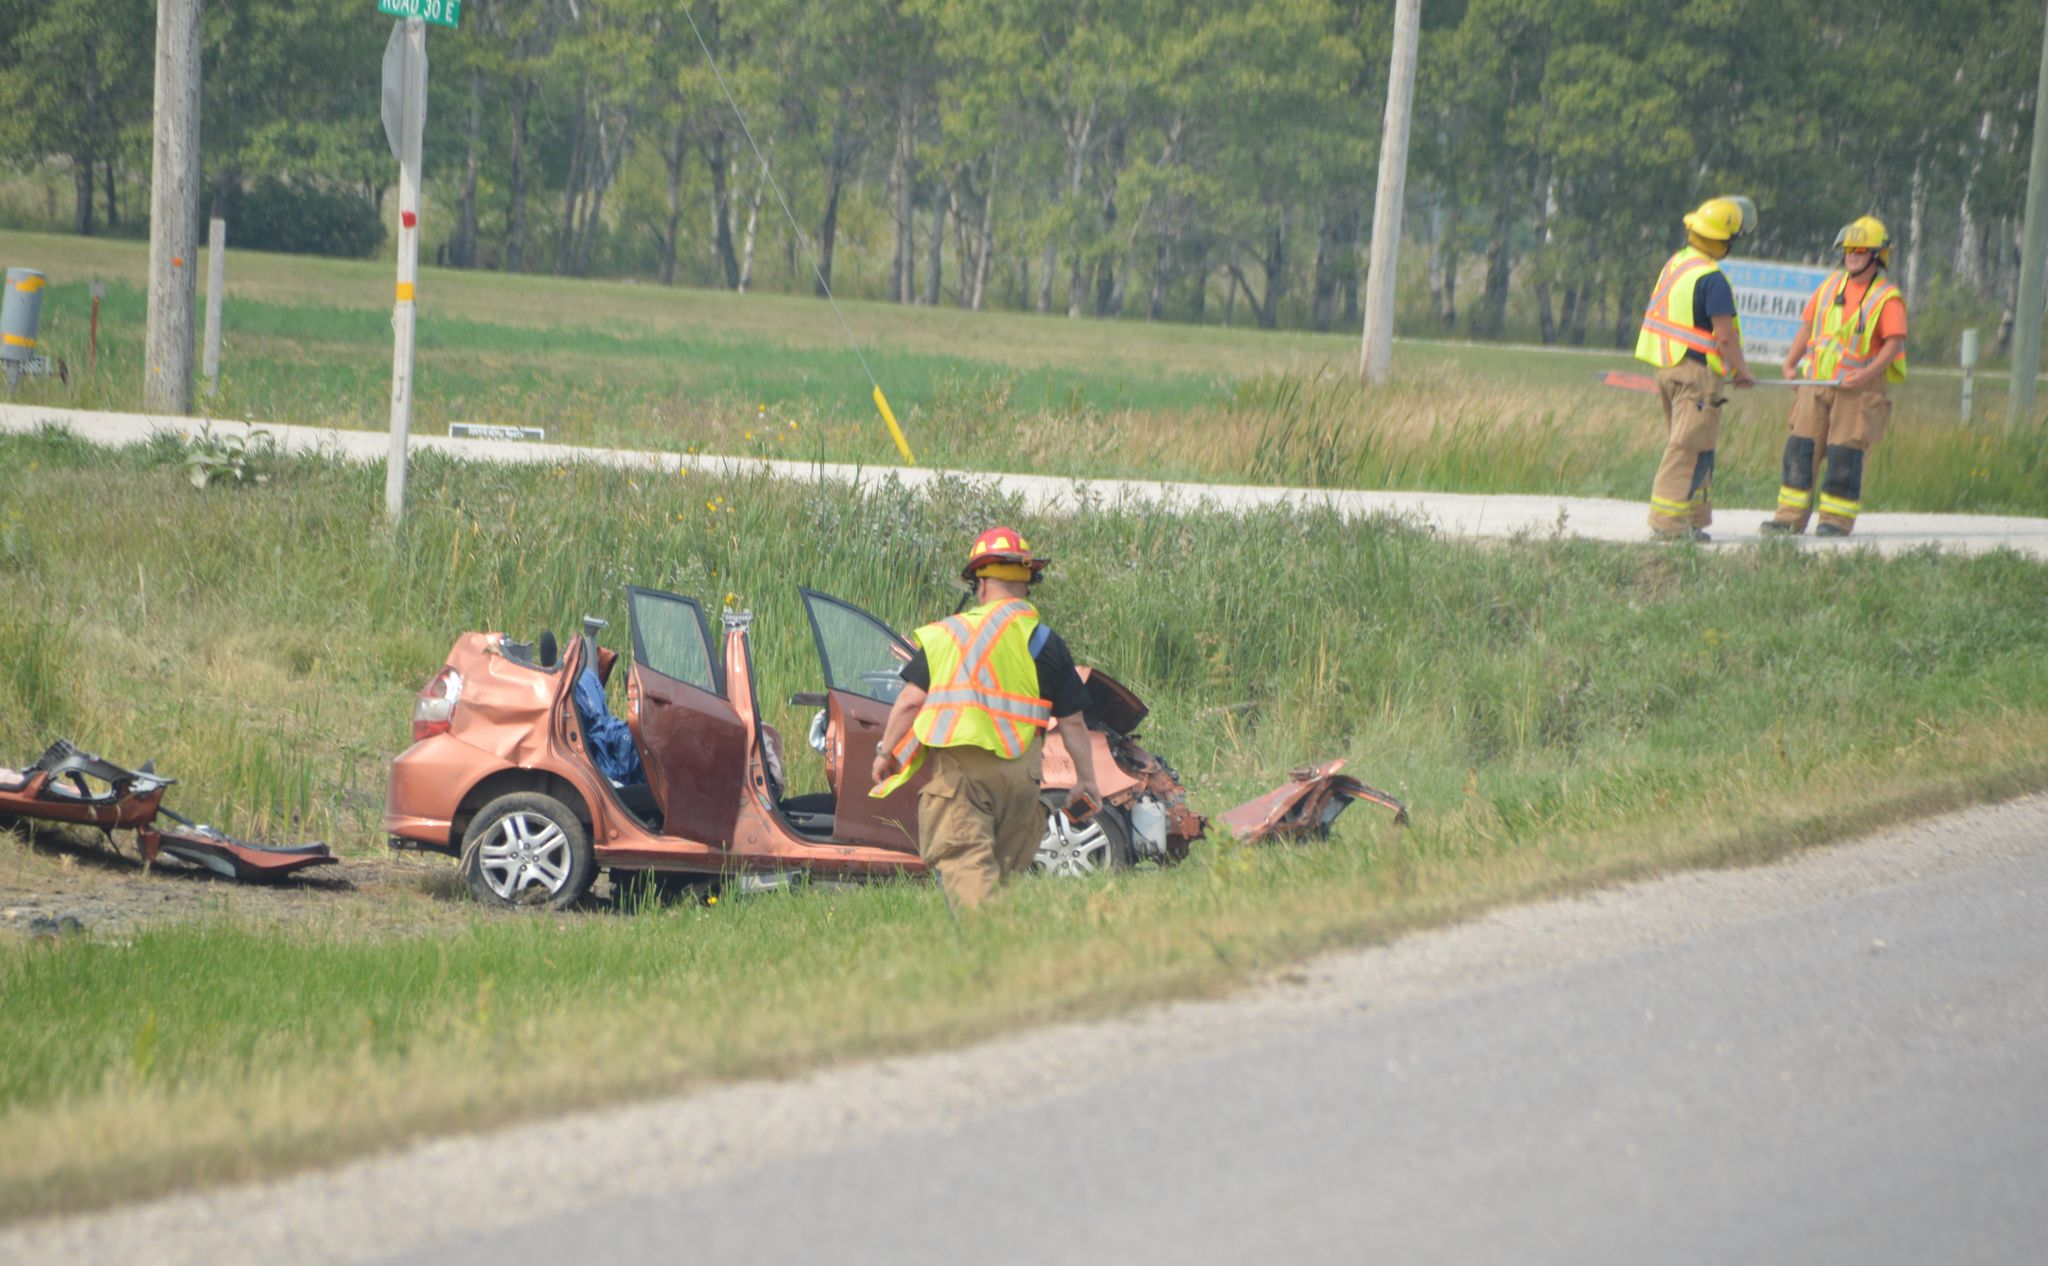 Two hospitalized after Highway 52 crash - The Carillon